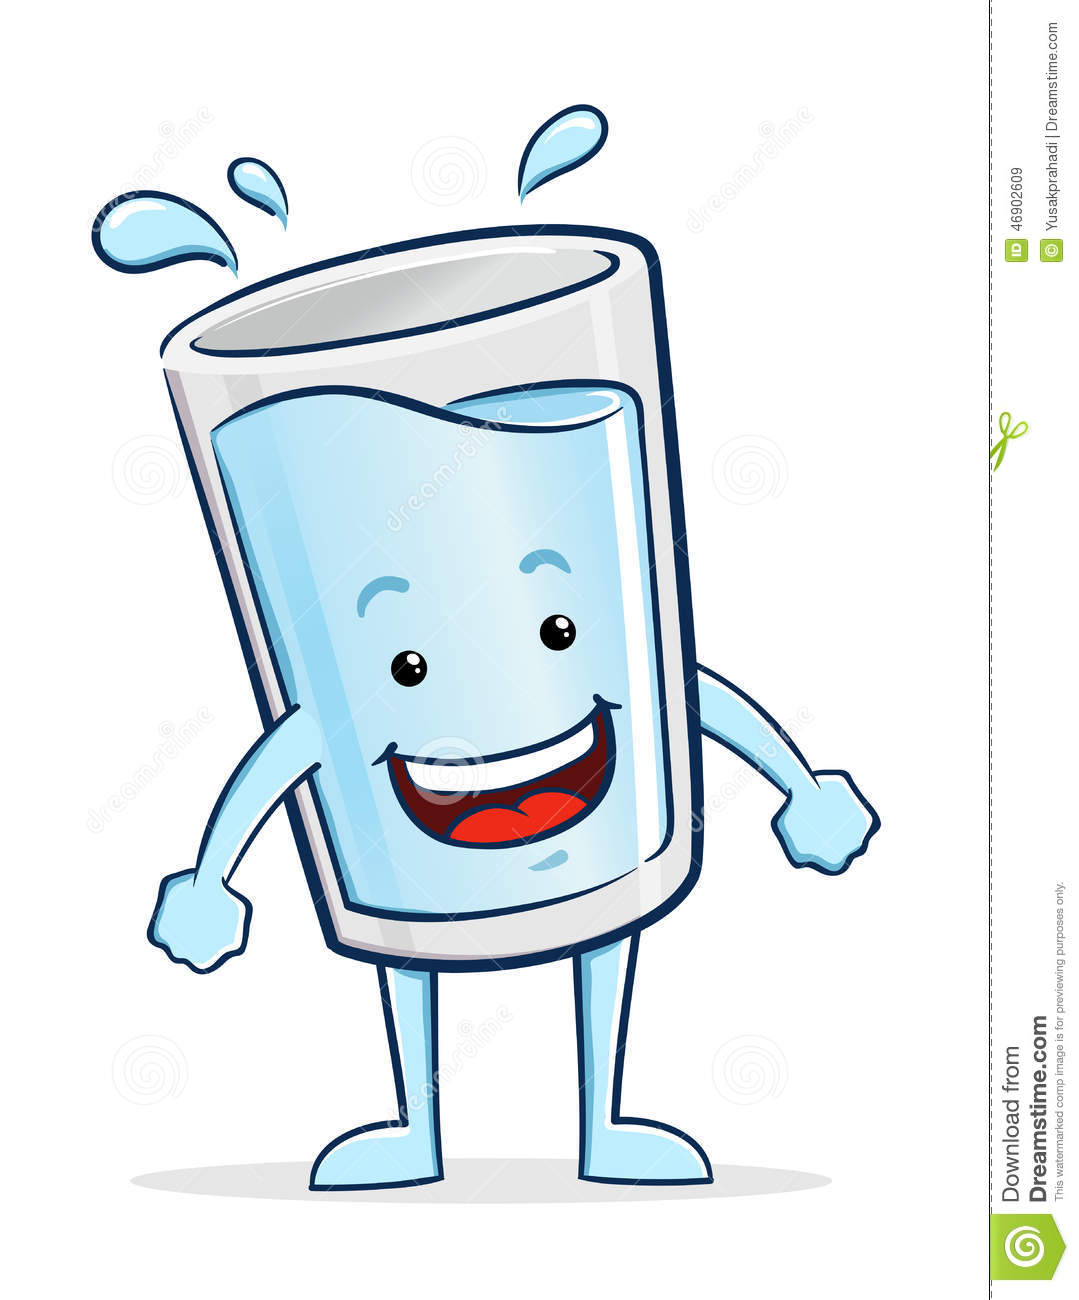 Glass Of Water Character Stock Vector - Image: 46902609